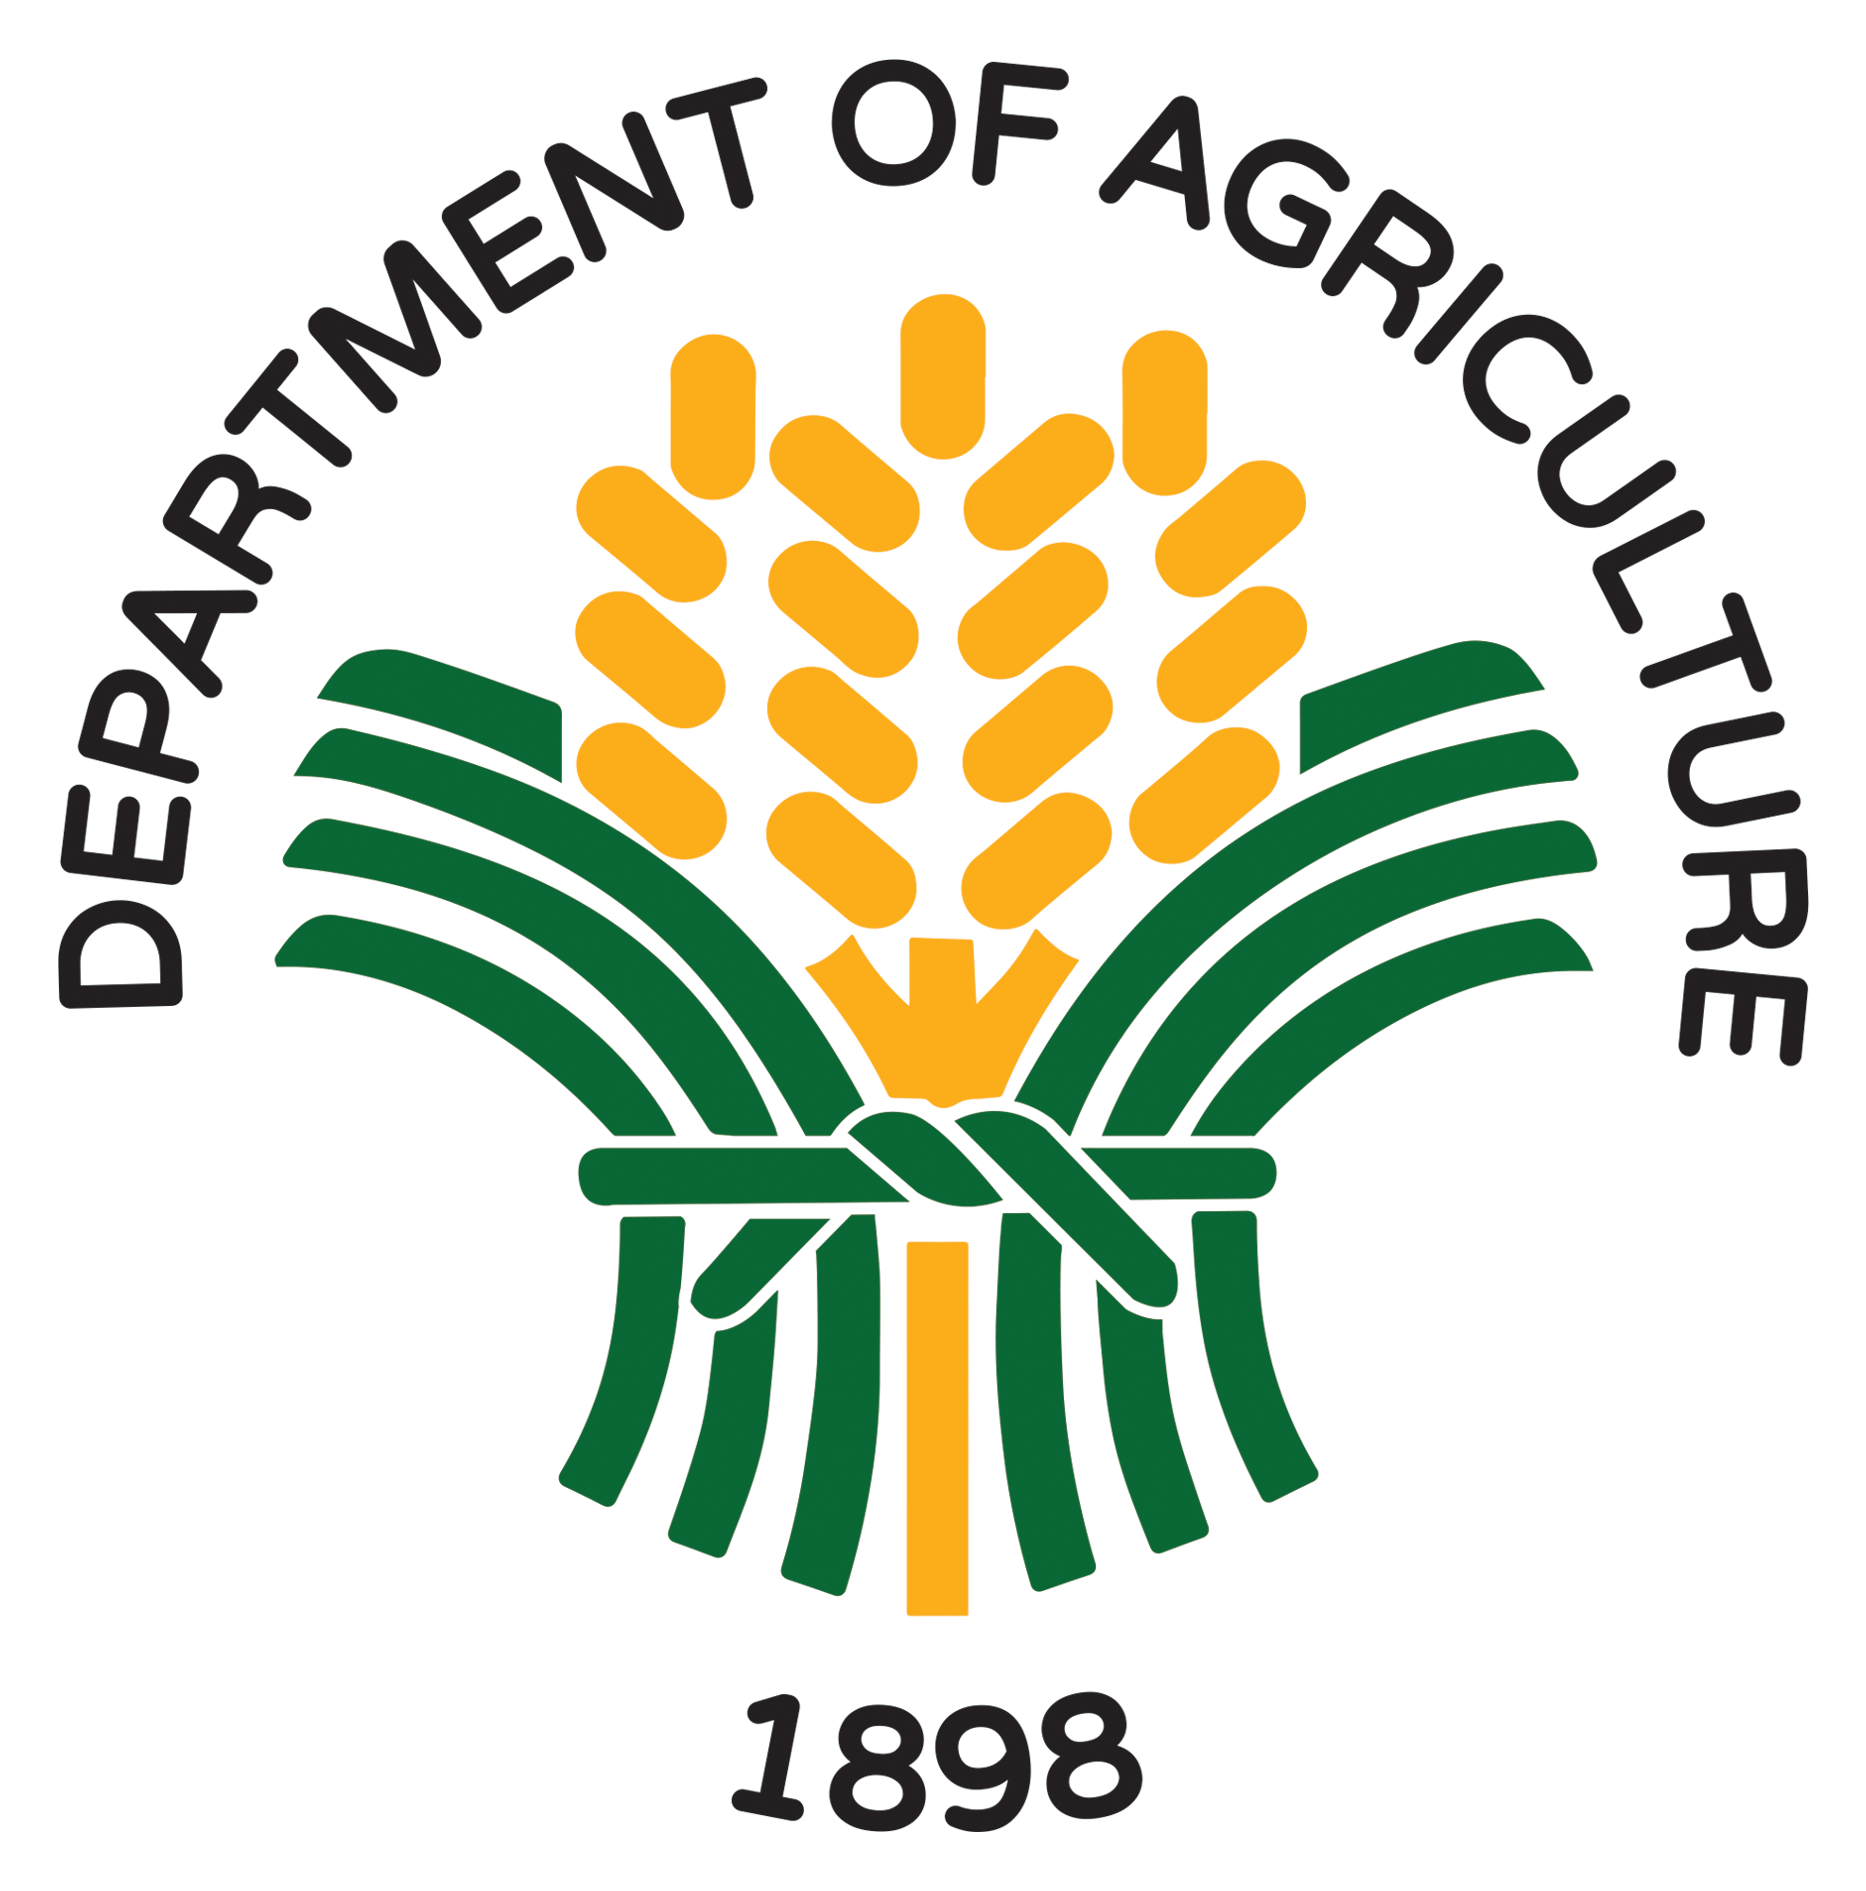 Philippine Council for Agriculture and Fisheries.